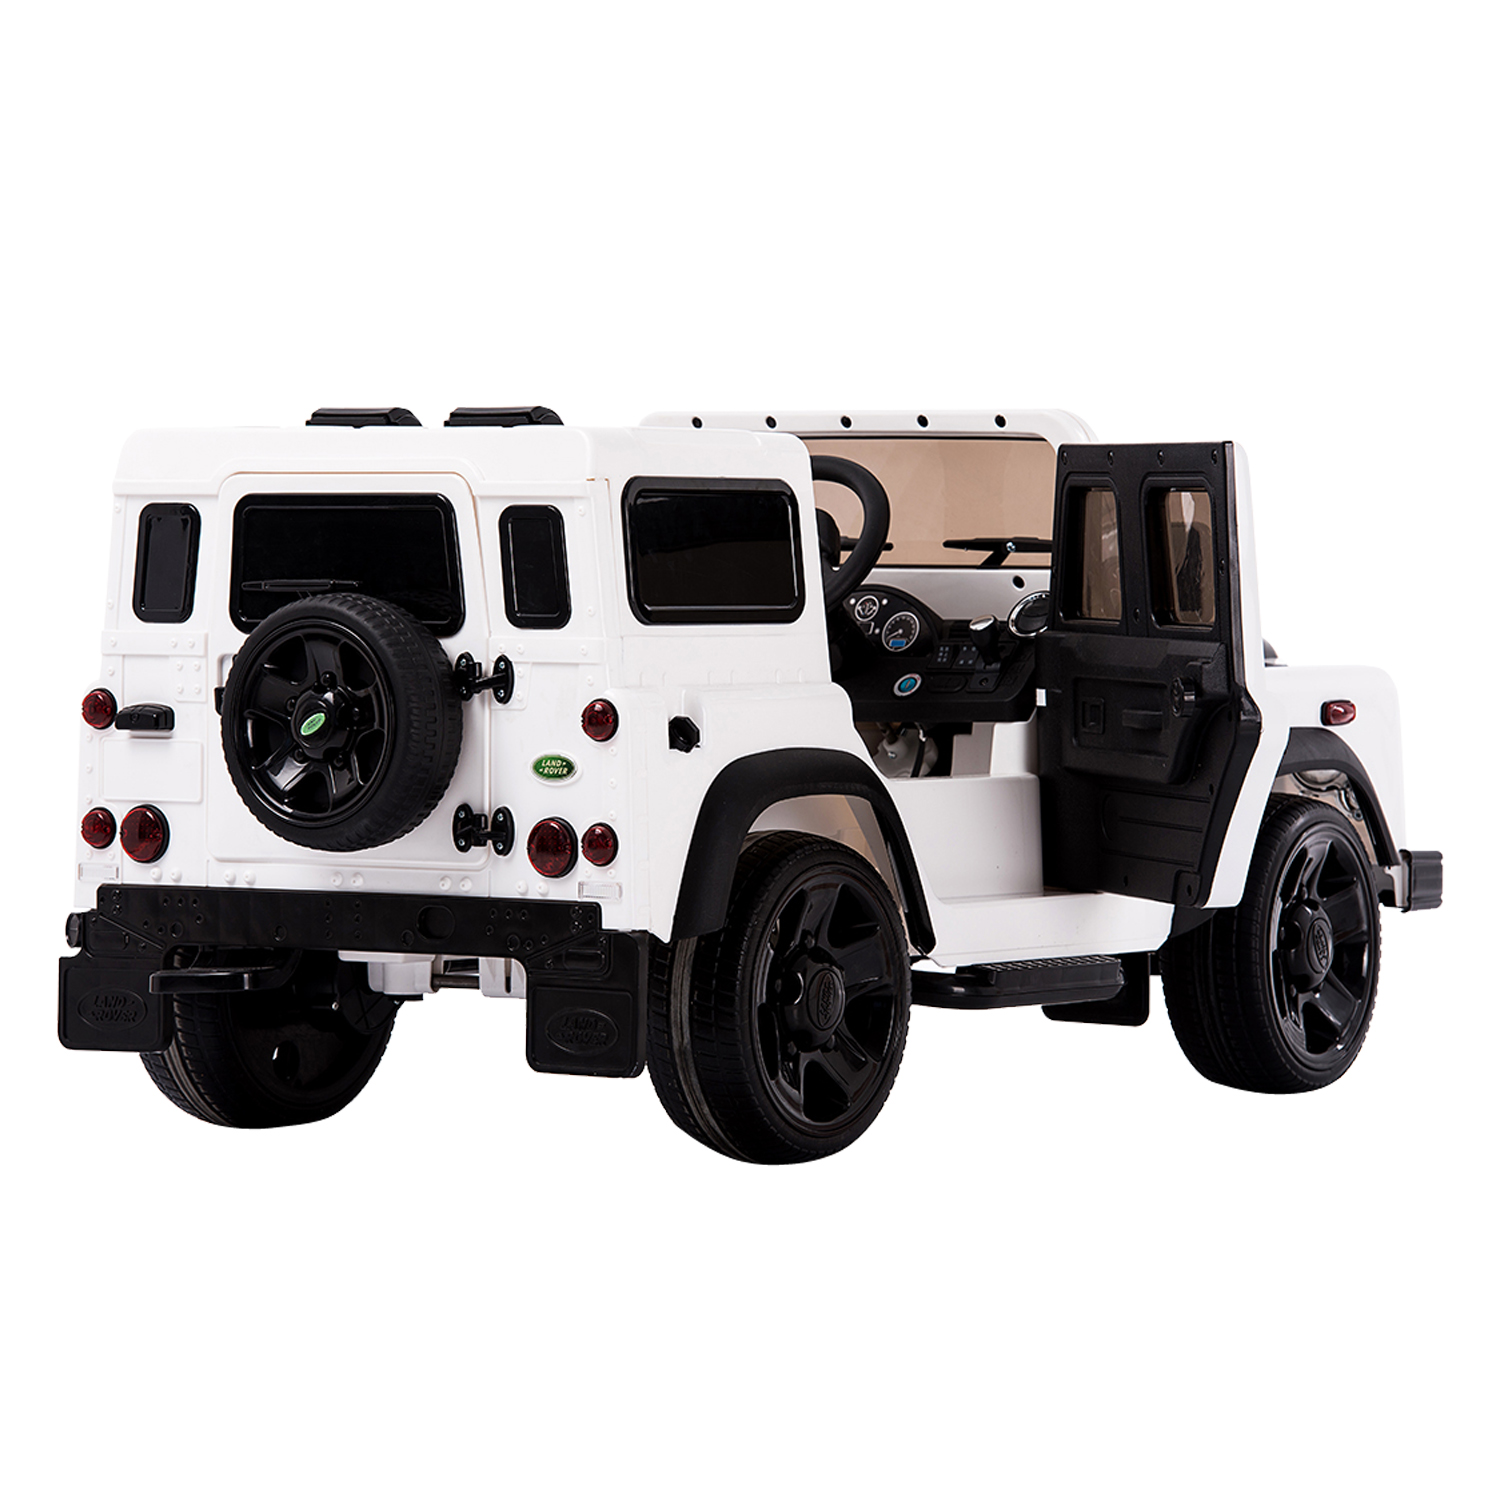 Aosom 12V Land Rover Defender Kids Electric Ride Car with MP3